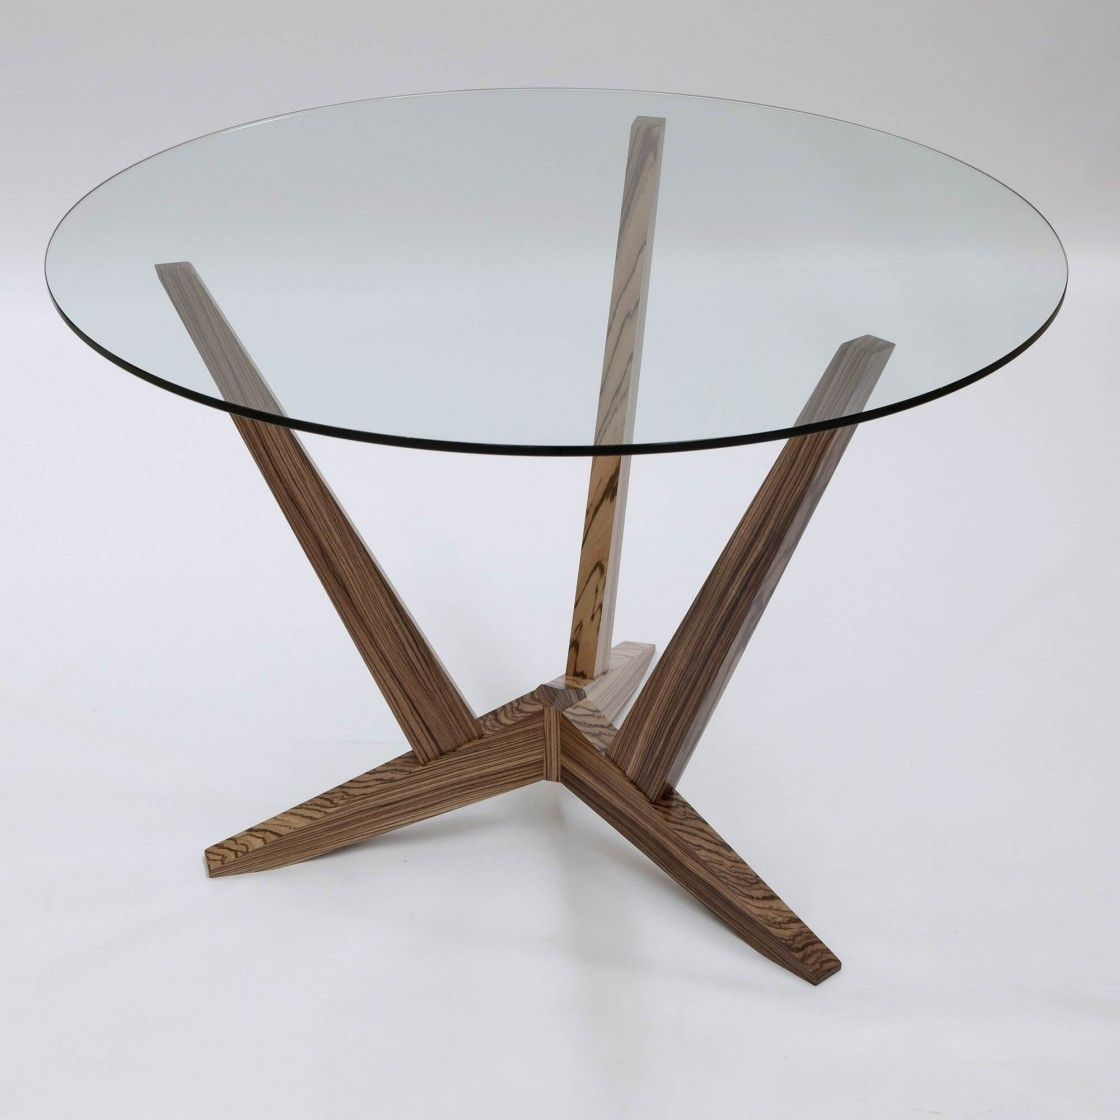 Simple Round Glass Dining Table With Walnut Wood Legs, Inexpensive Modern  Glass Top Dining Tables: Dining Room, Furniture